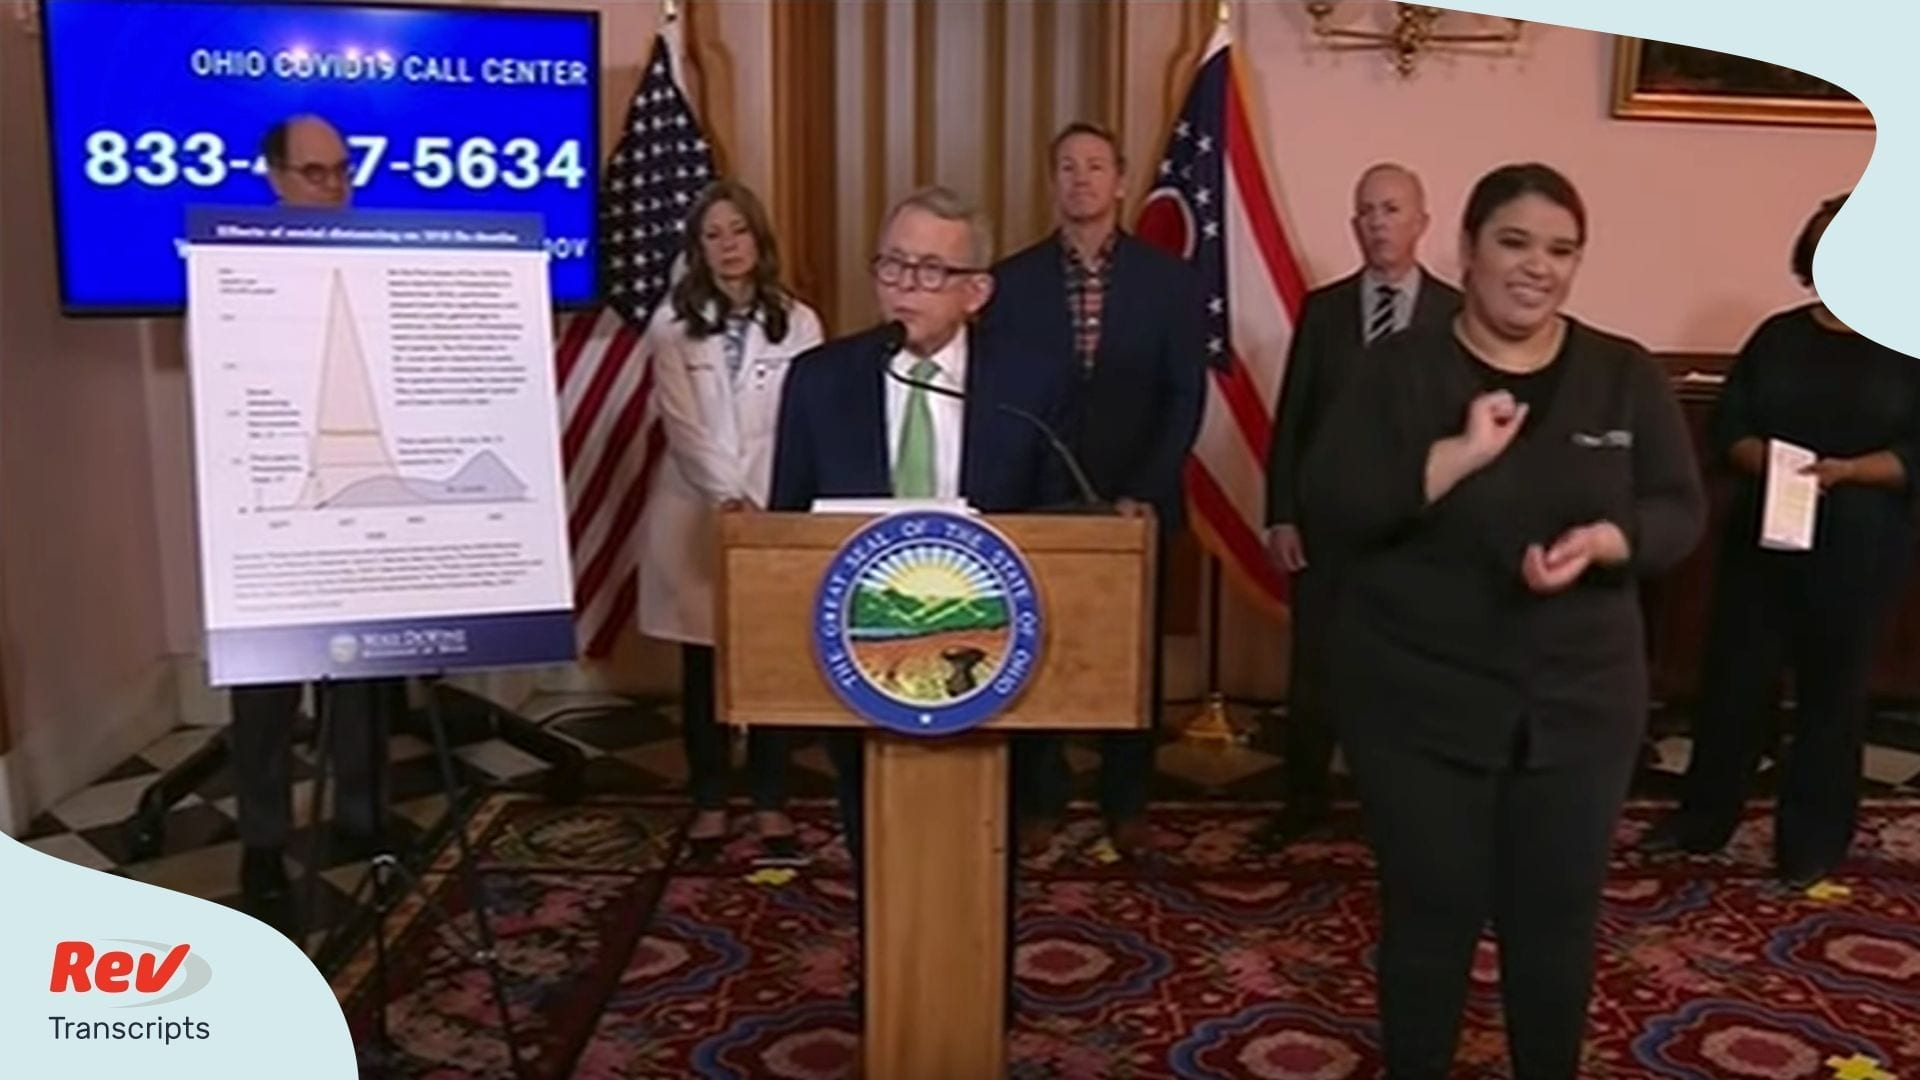 Ohio Governor Mike DeWine News Conference Coronavirus Transcript